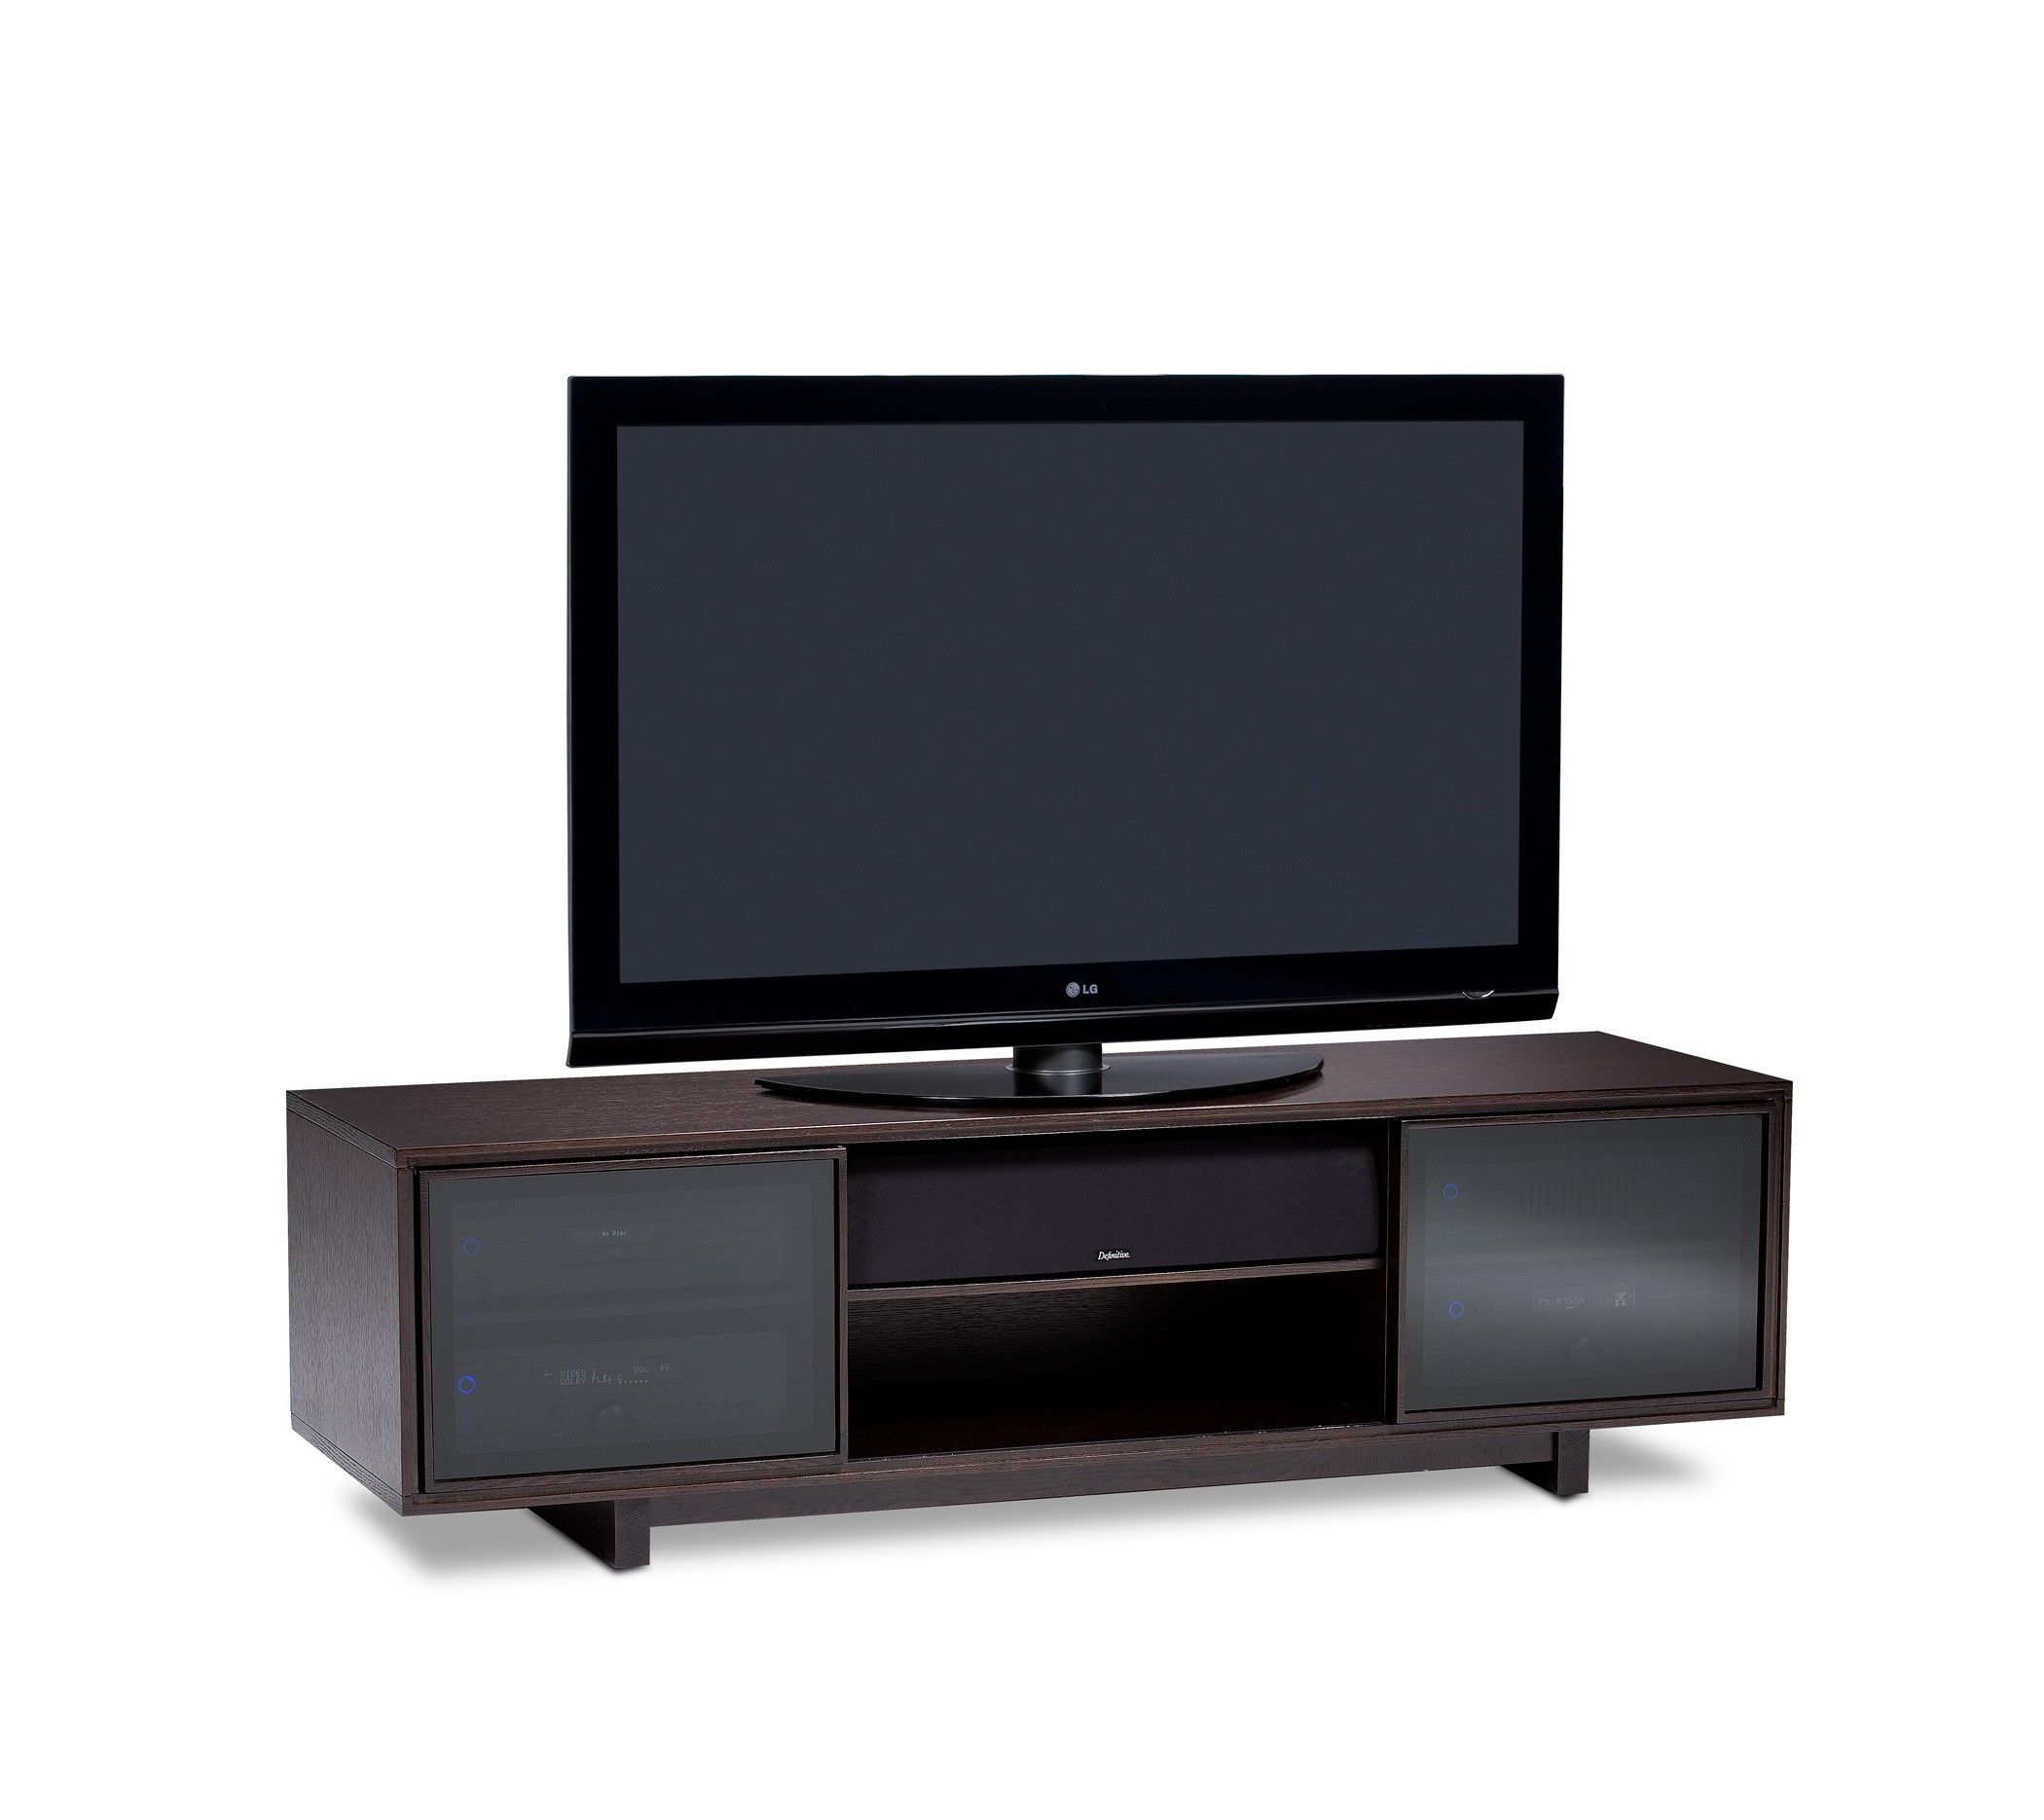 BDI Cirrus 8157 Espresso Stained Oak Low Profile TV Stand For Large Flat Screens